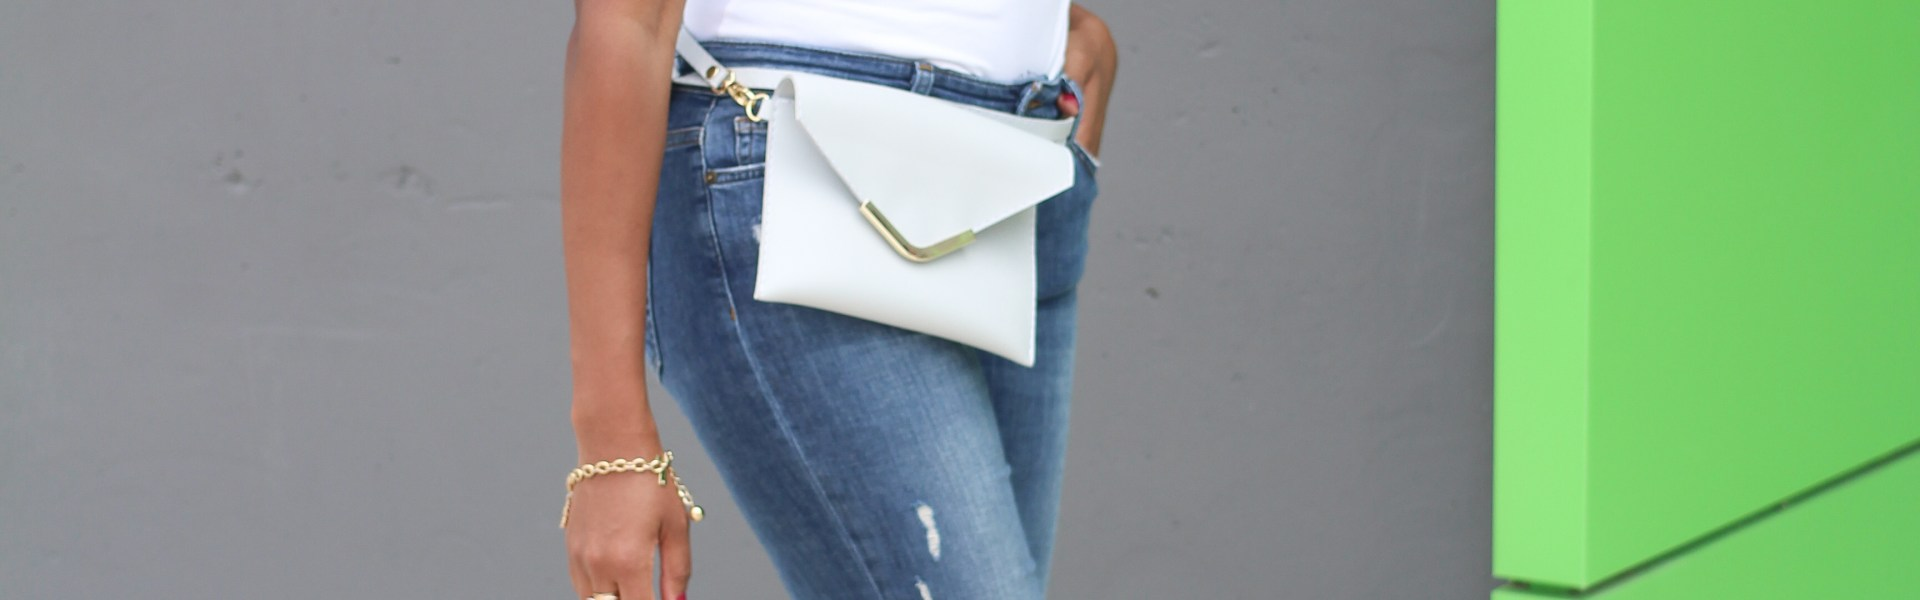 FANNY PACK, FIFTEEN AND FIFTEEN, FALL HANDBAG, HANDBAG TRENDS, CLUTCH HANDBAG, CROSSBODY BAG, STATEMENT BAG, ZARA SCARF, SCARF TREND, HENRI BENDEL, CELINE SUNGLASS DUPE, WHITE TEE AND JEANS, DALLAS BLOGGER, FASHION BLOGGER, BLACK FASHION BLOGGER